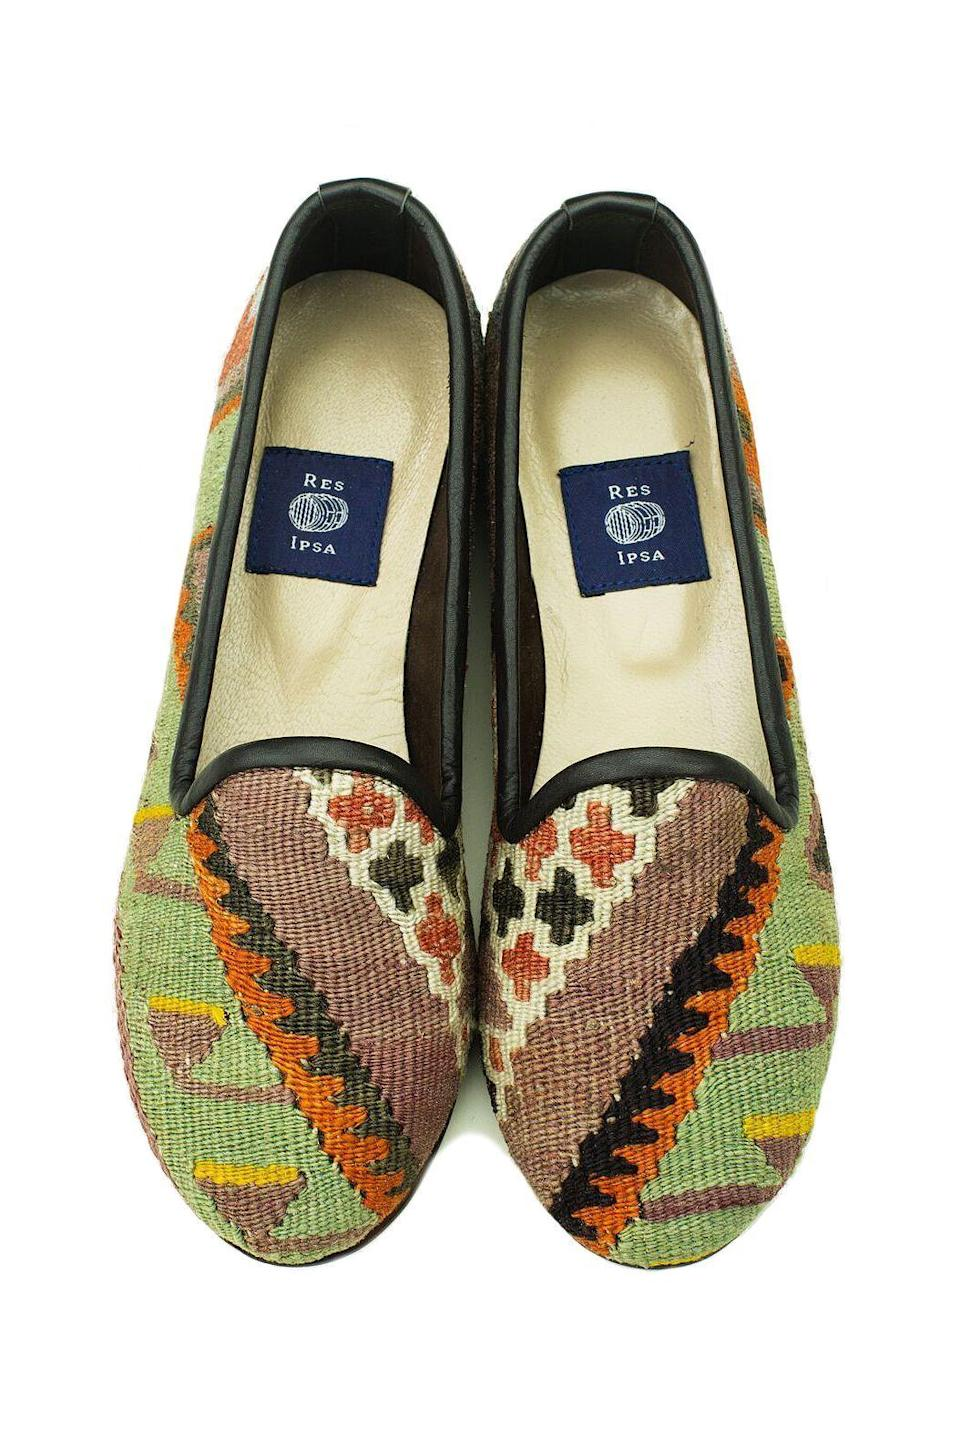 "<p><strong>Res Ipsa</strong></p><p>resipsausa.com</p><p><strong>$225.00</strong></p><p><a href=""https://resipsausa.com/collections/womens-kilim-loafers/products/womens-kilim-loafer-6-18"" rel=""nofollow noopener"" target=""_blank"" data-ylk=""slk:SHOP IT"" class=""link rapid-noclick-resp"">SHOP IT</a></p><p>These one-of-a-kind loafers assembled from Turkish rugs somehow seem to go with everything and guarantee you a look that no one else can cop.</p>"